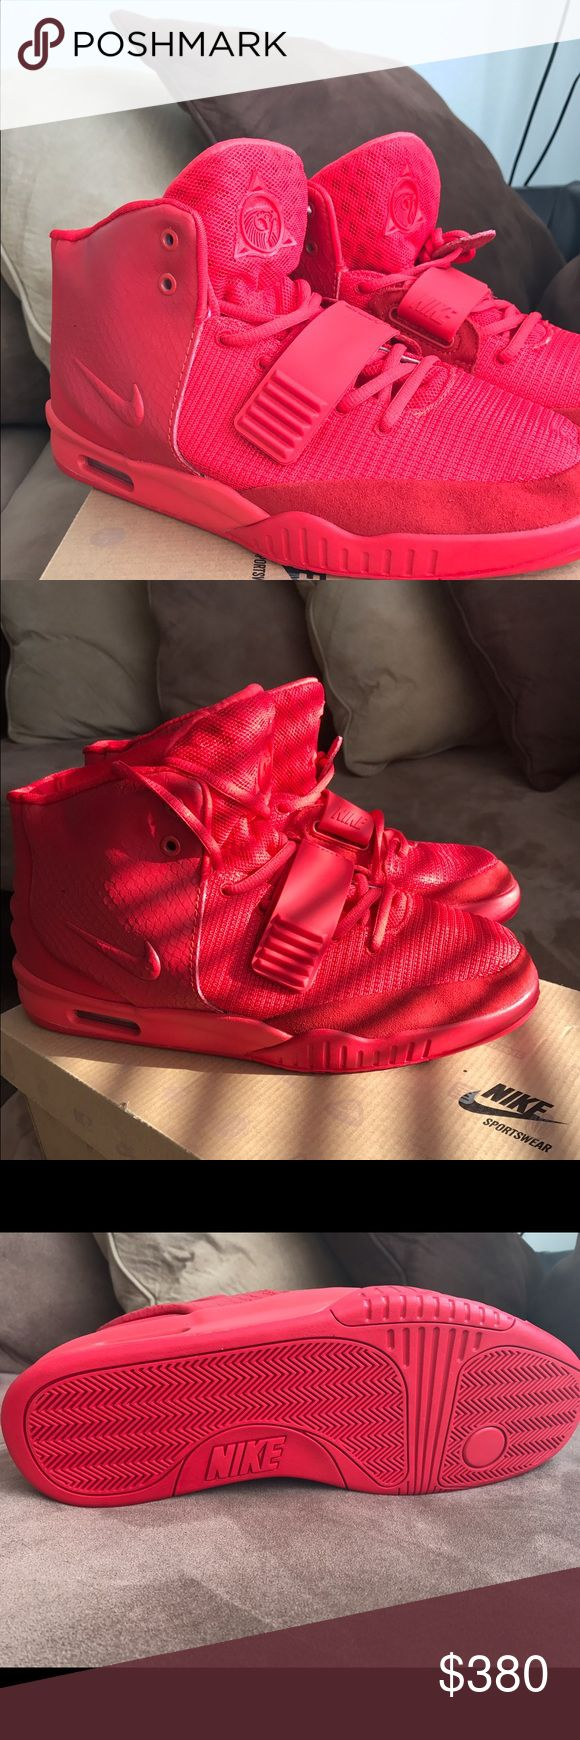 Nike Air Yeezy 2 red october Brand new Us size 11 Shoes Athletic Shoes